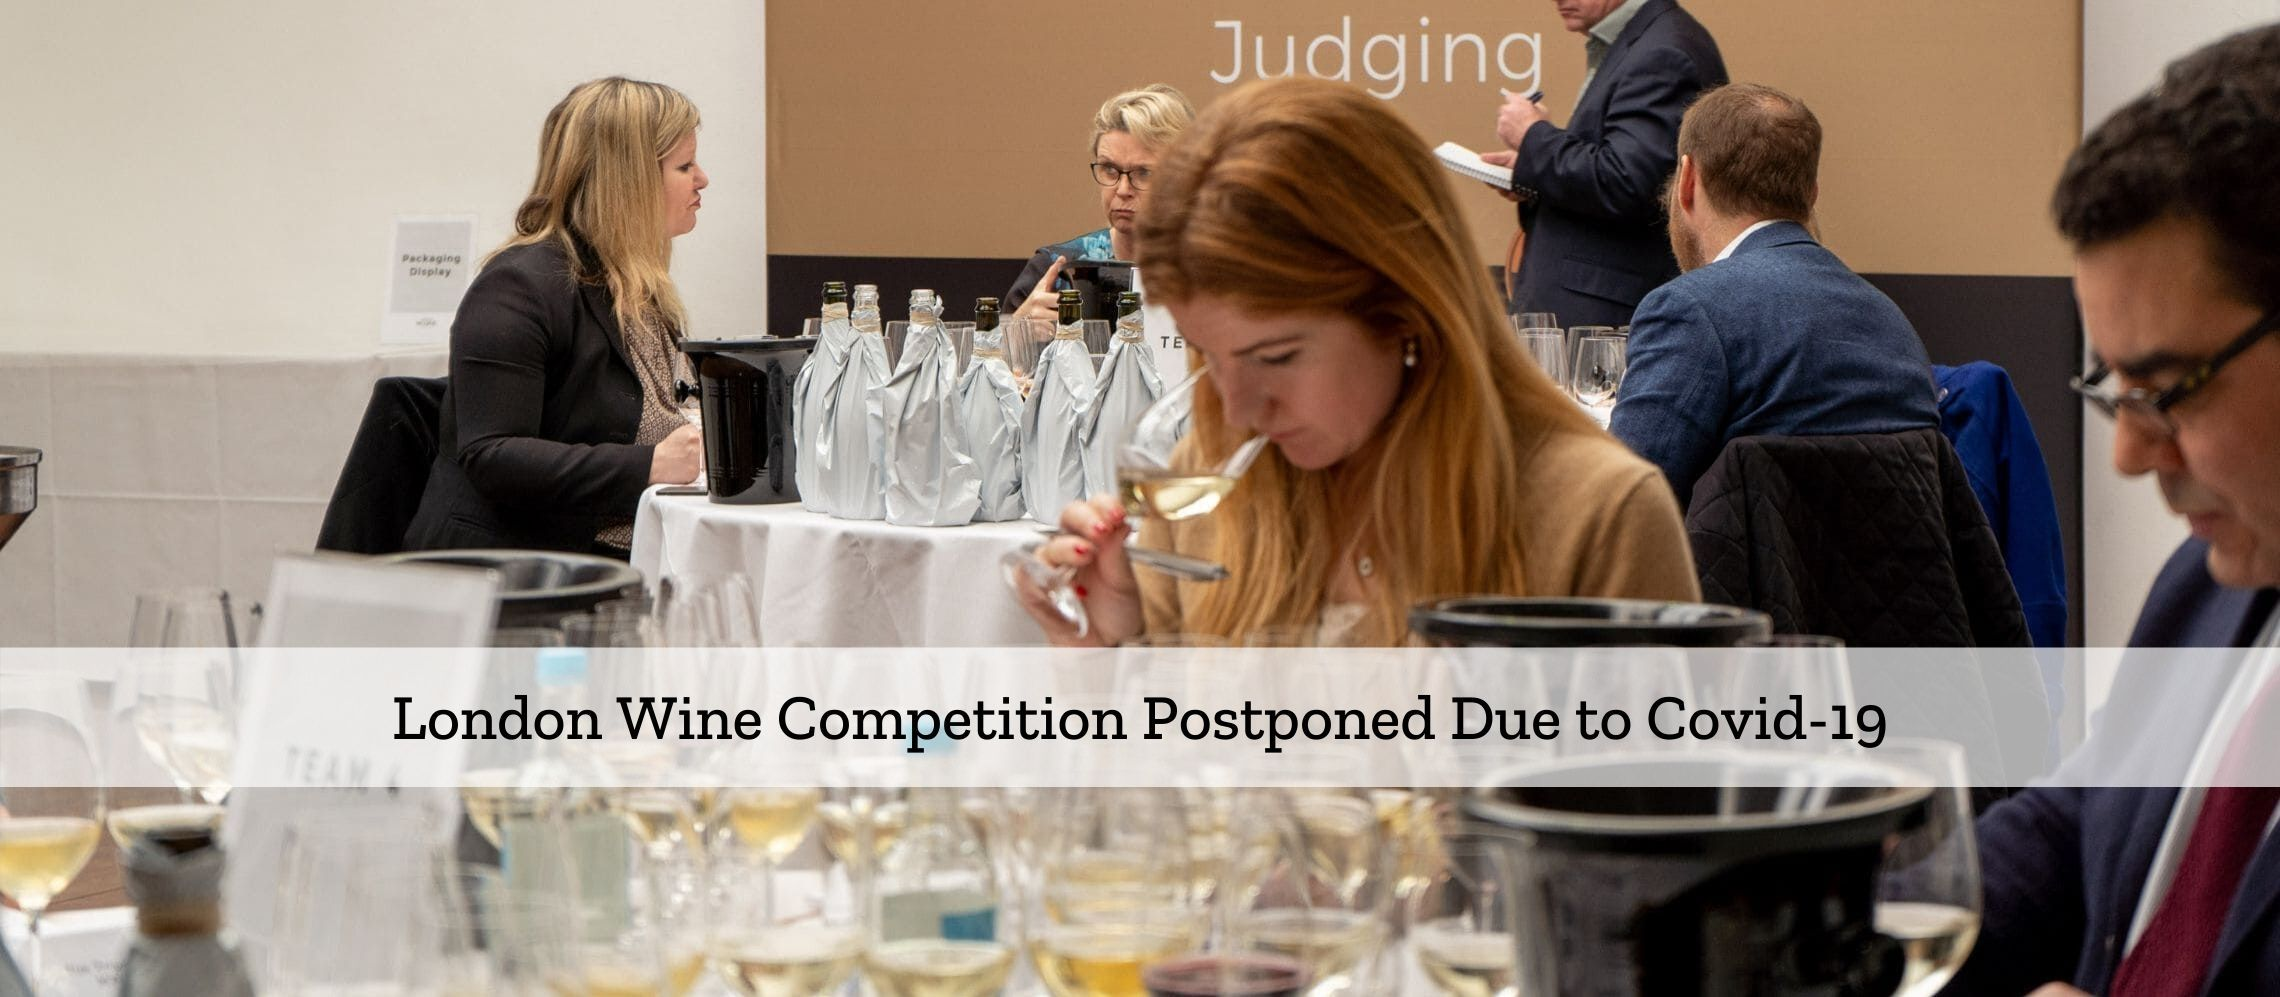 Photo for: London Wine Competition Postponed Over Covid-19